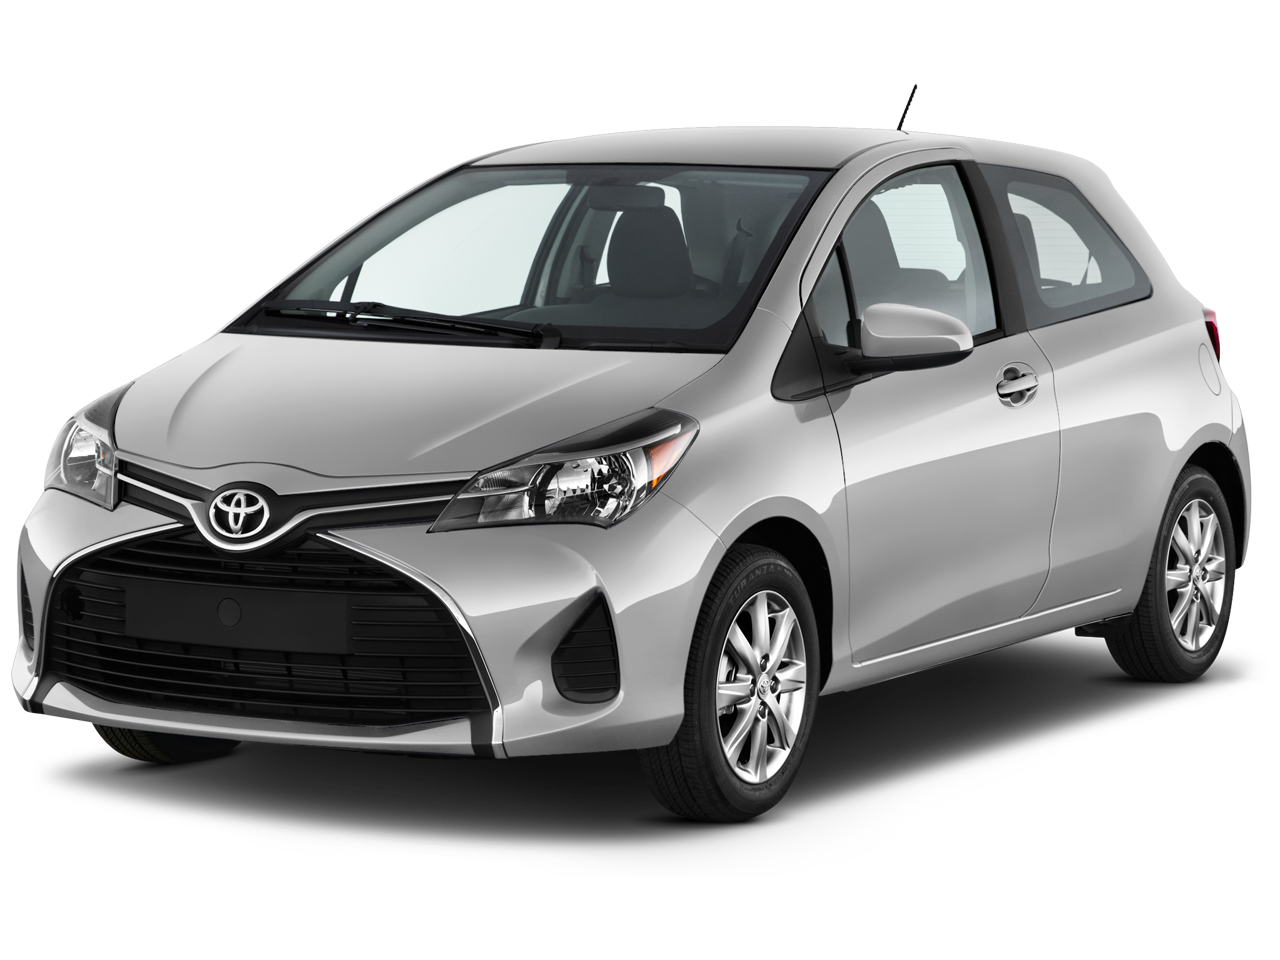 new 2017 toyota yaris l near herculaneum mo twin city toyota. Black Bedroom Furniture Sets. Home Design Ideas